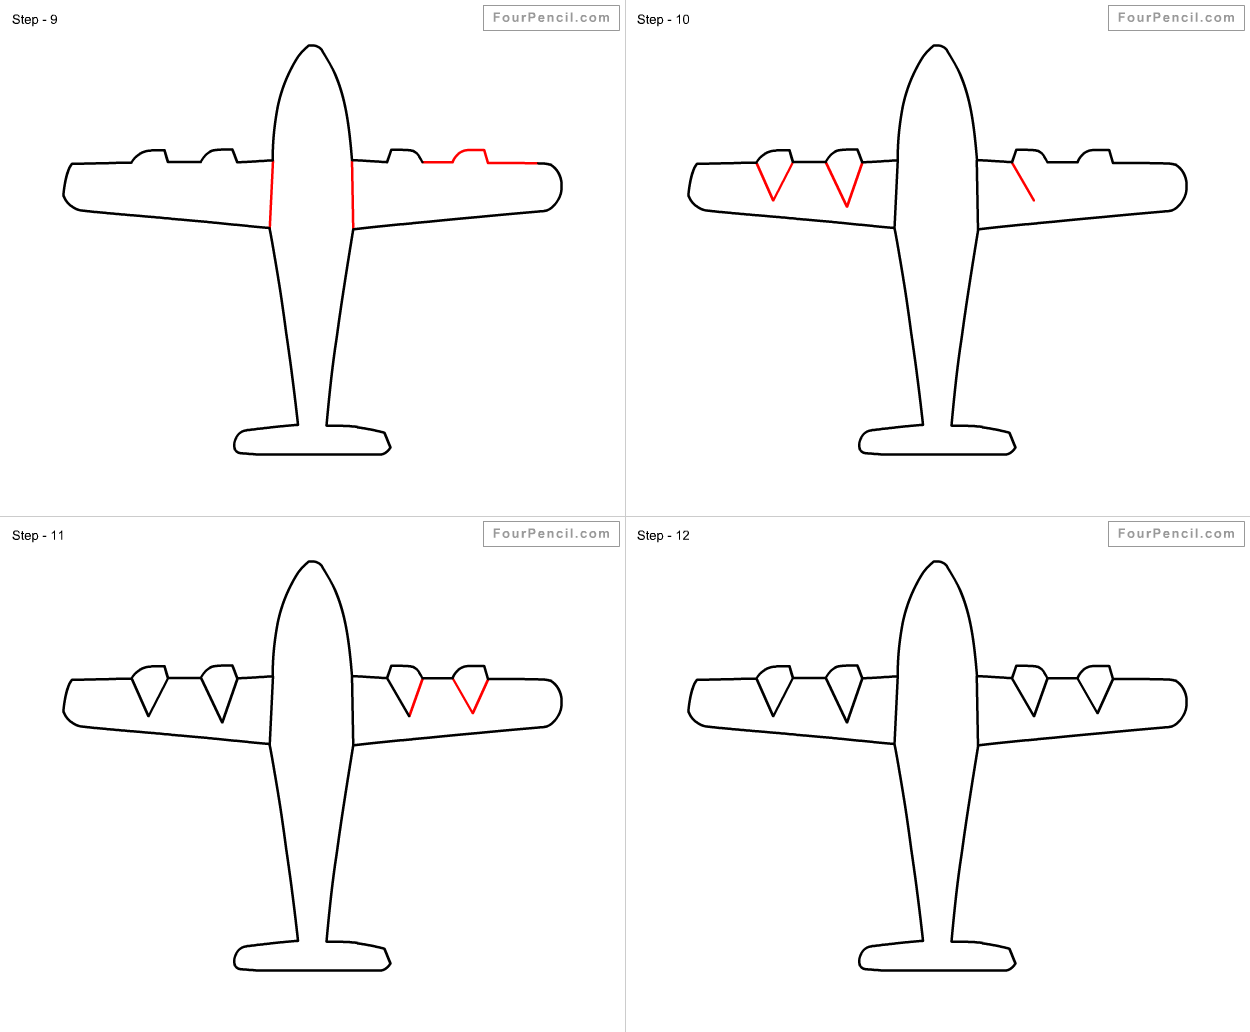 how to draw an airplane step by step how to draw a plane tutorial drawing tutorial learning by step draw an how step to airplane